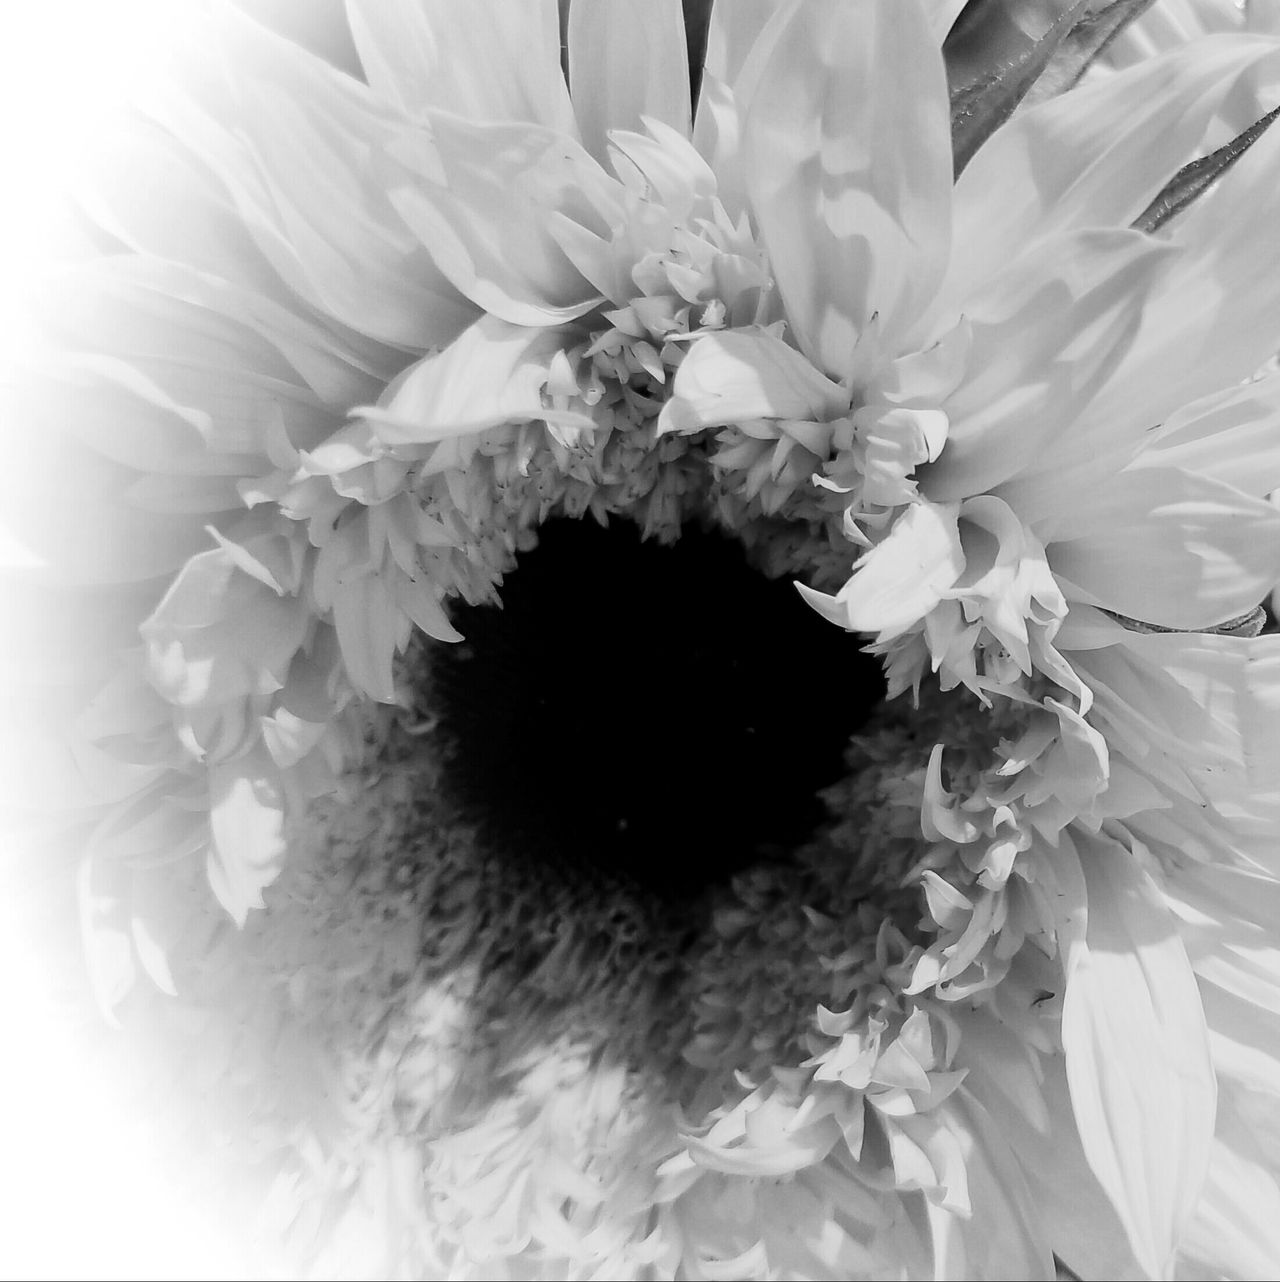 BLACK -N-WHITE HOLE Flower Fragility Freshness Flower Head Petal Close-up Beauty In Nature Nature Growth In Bloom Single Flower Botany Blossom Springtime Extreme Close-up Day Full Frame Pollen Blooming Monochrome Photography MUR B&W The Song Of Light Black And White Flowers MUR HARVEST